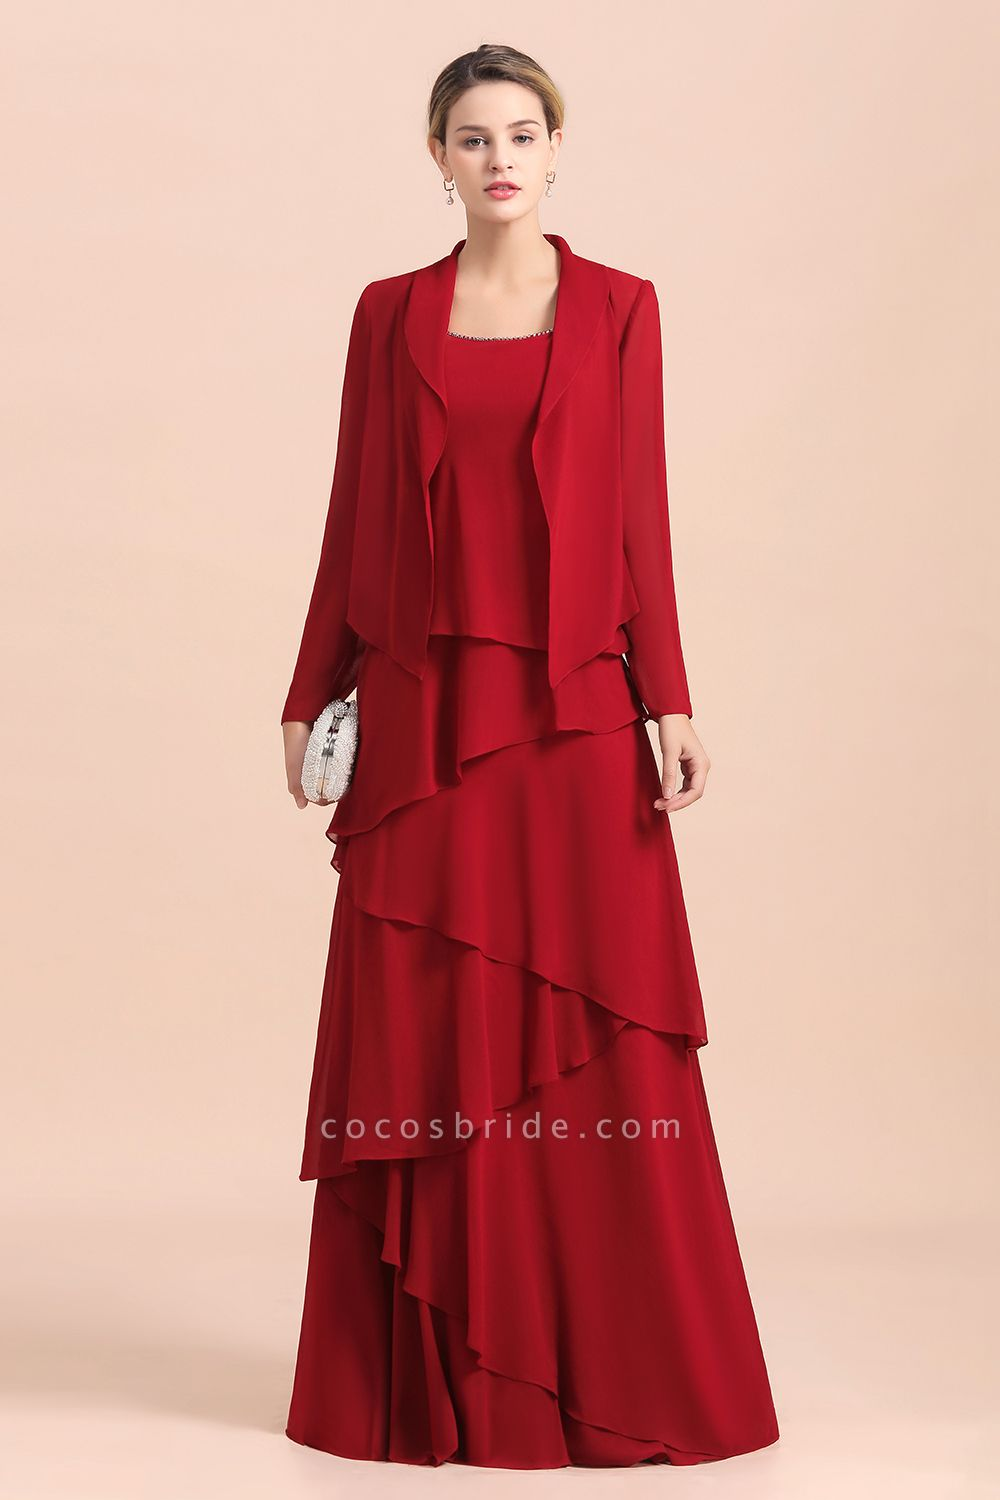 Elegant Burgundy Ruffles Chiffon Mother of the Bride Dress With Jacket